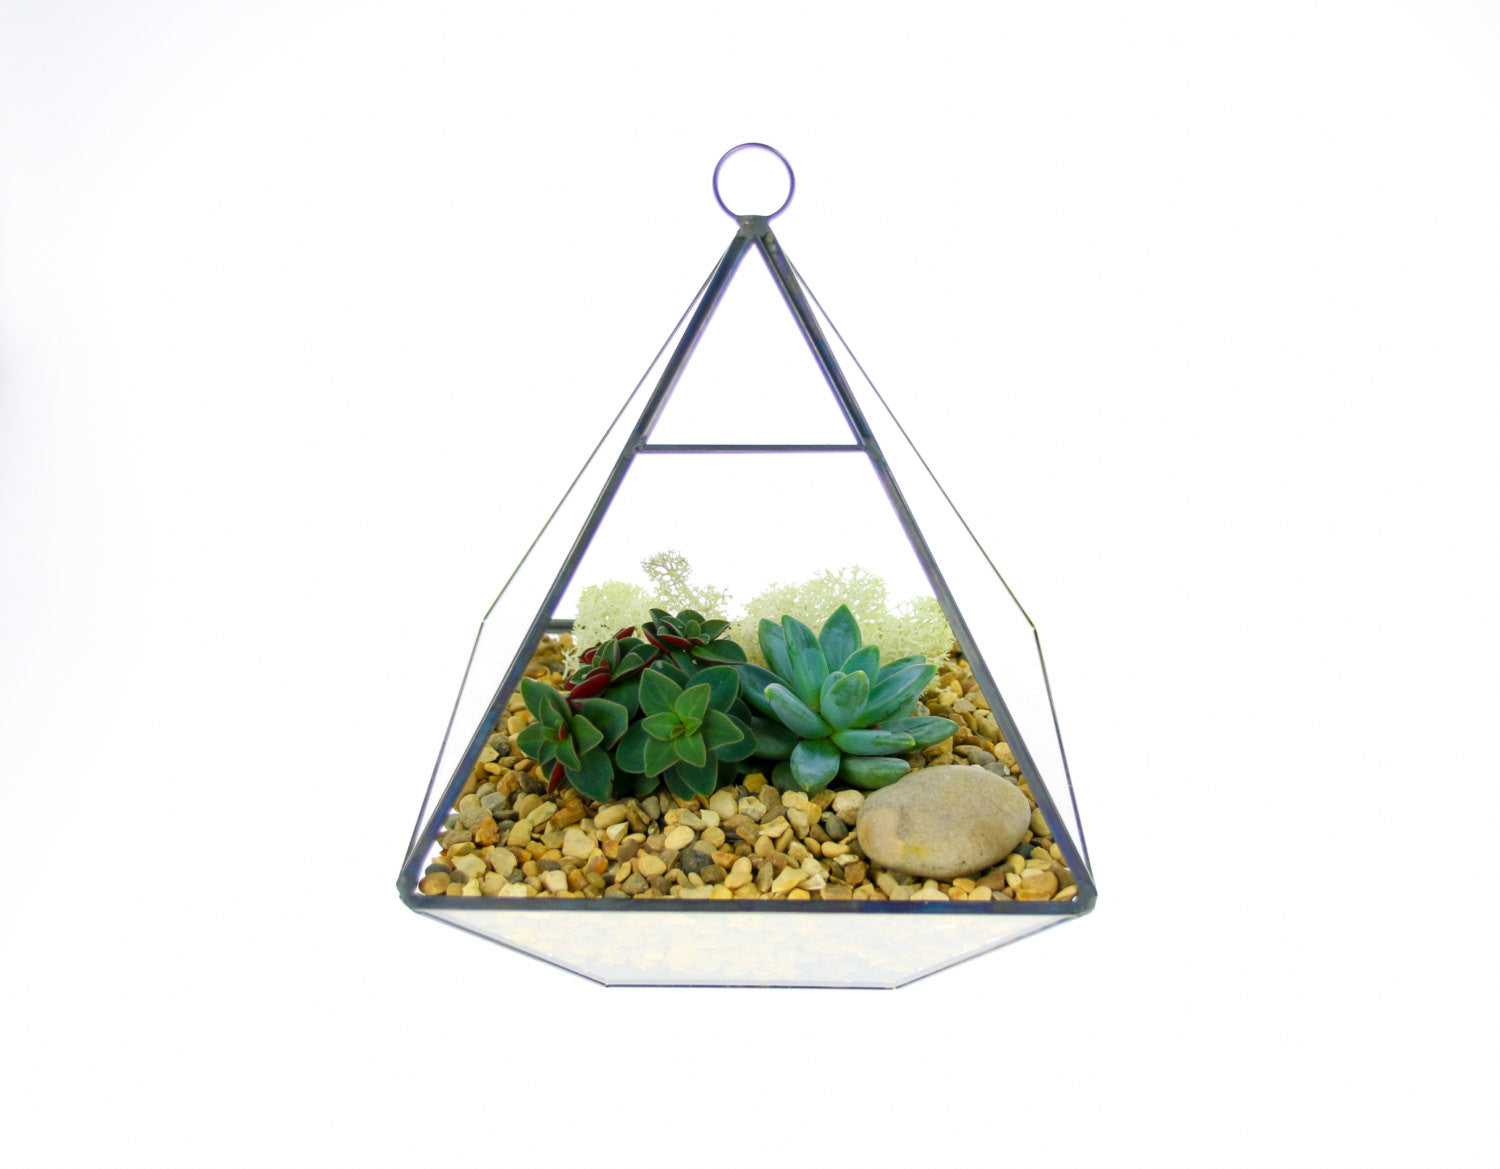 Contemporary Geometric Pyramid Terrarium Kit In Copper And Glass The Art Of Succulents